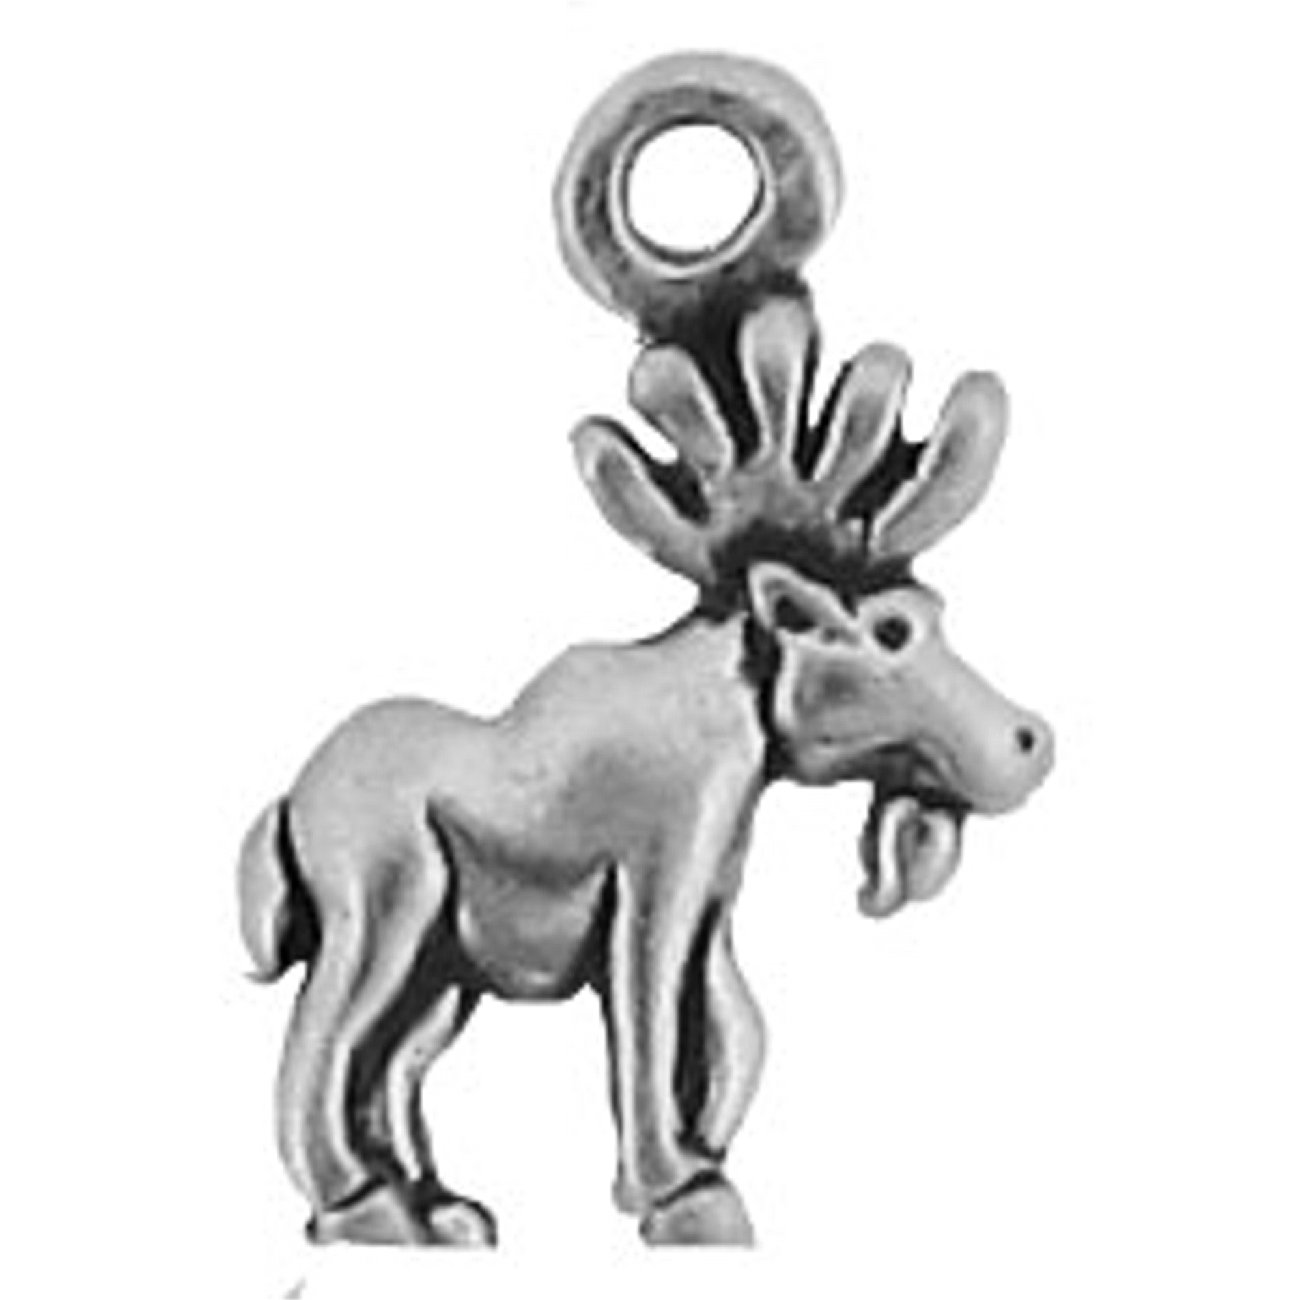 Sterling Silver 7 4.5mm Charm Bracelet With Attached Mini Right Facing Moose Charm With Antlers